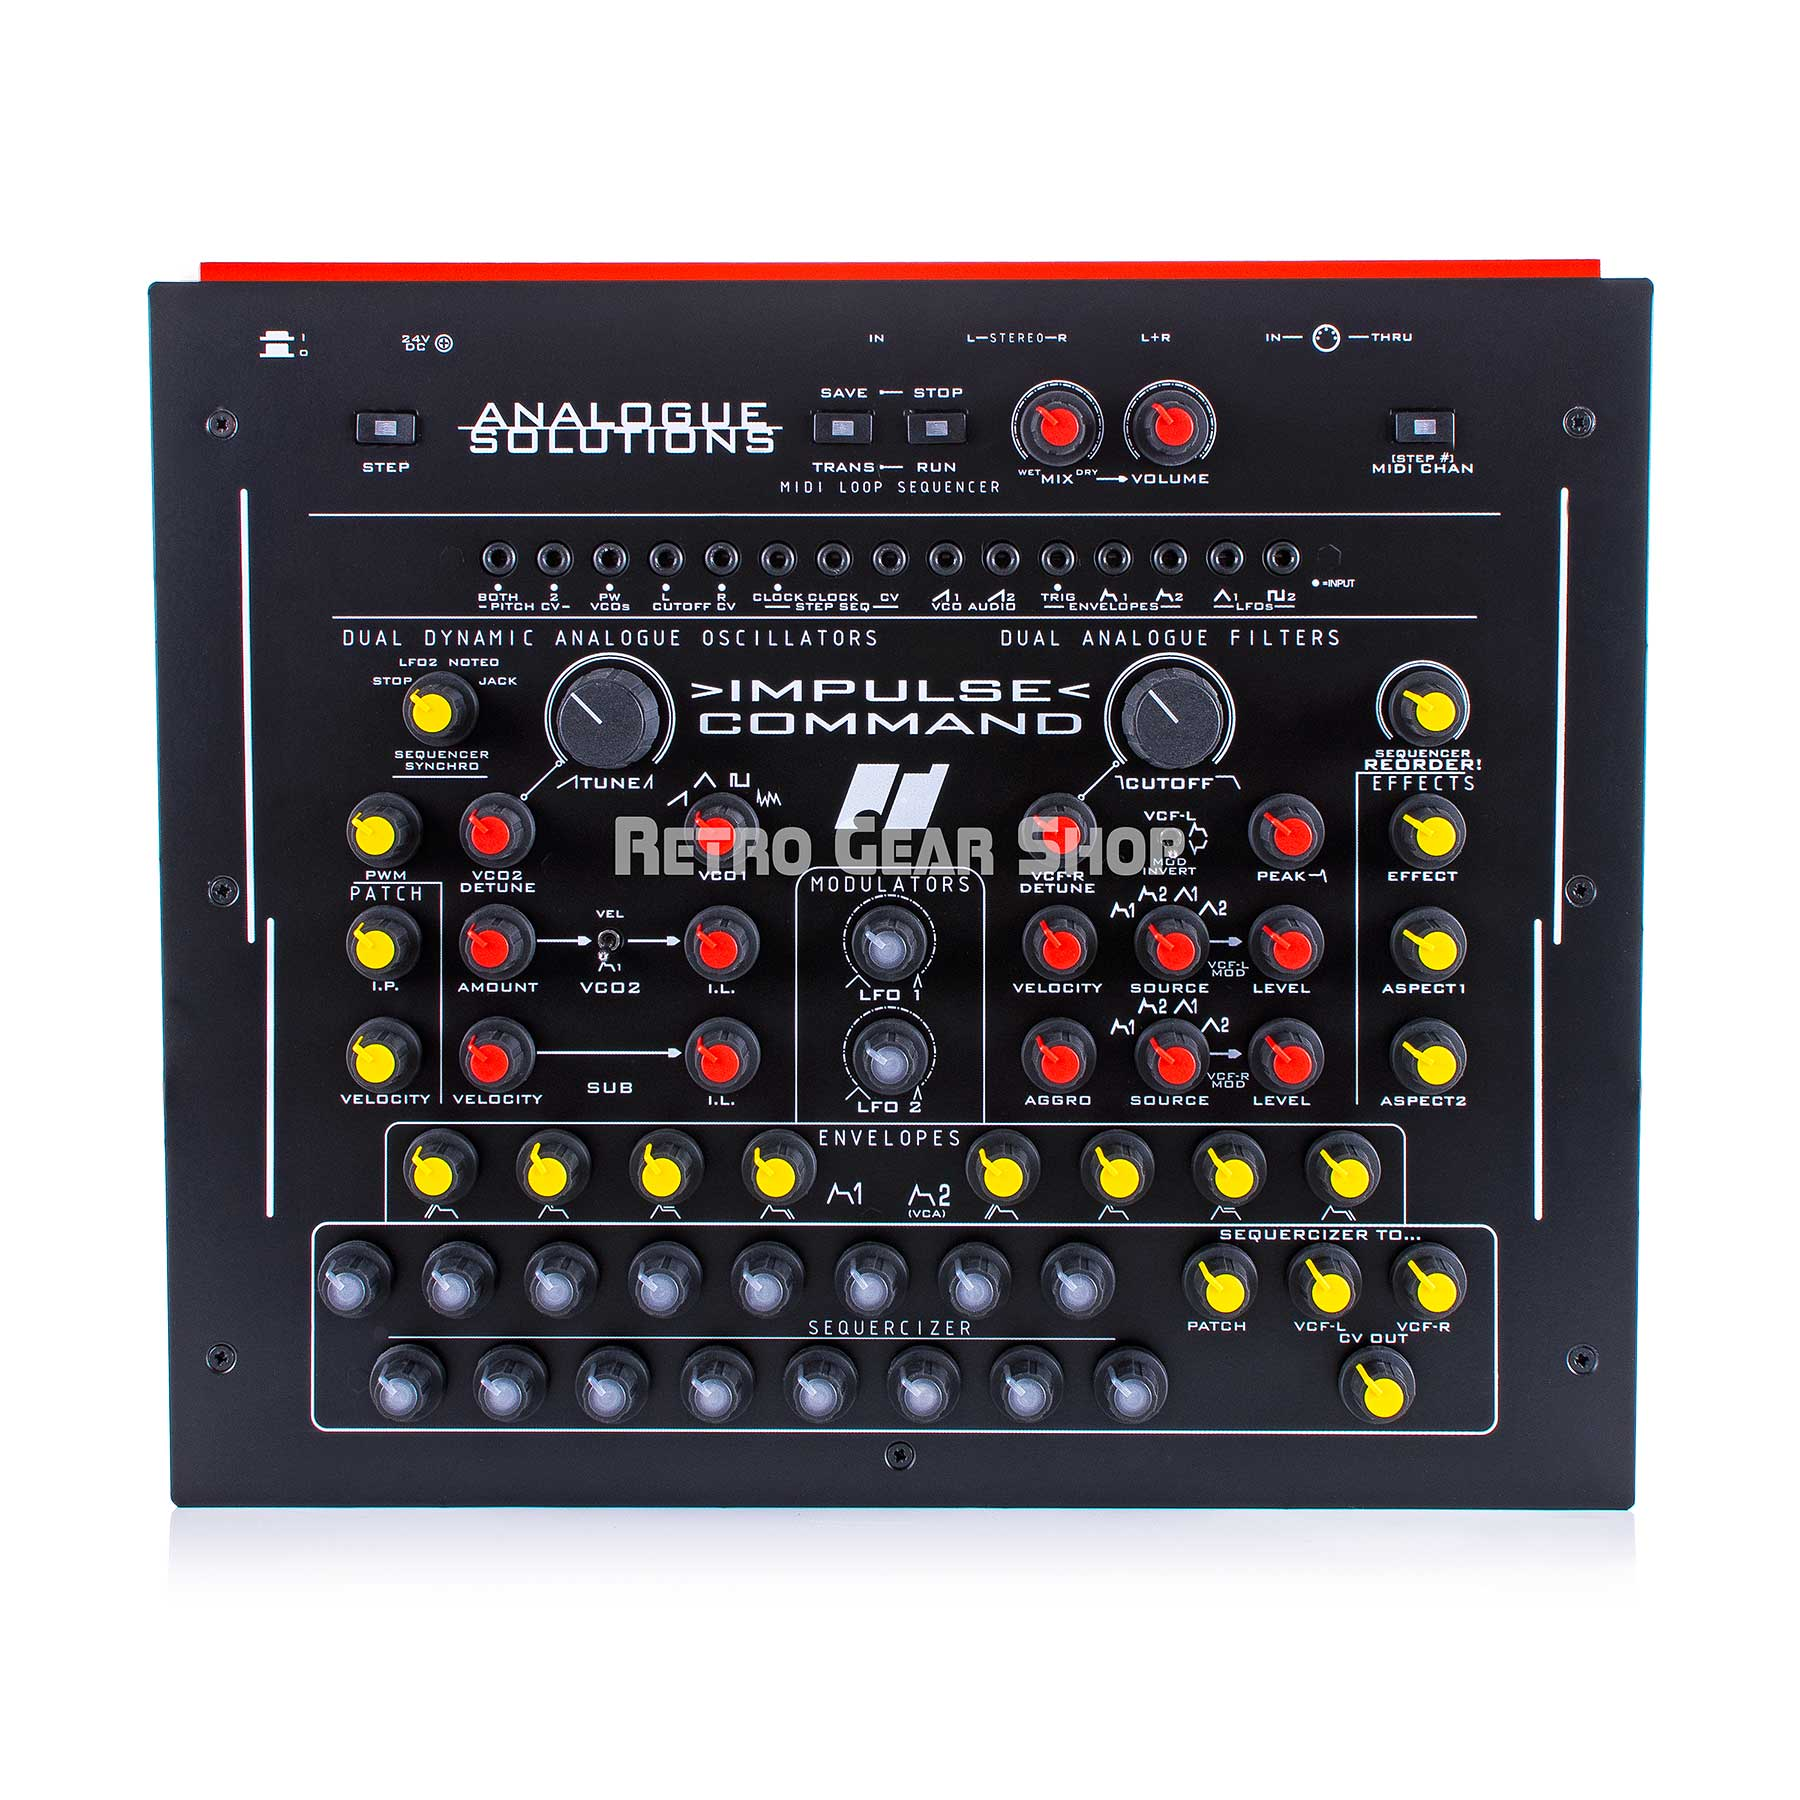 Analogue Solutions Synthesizers